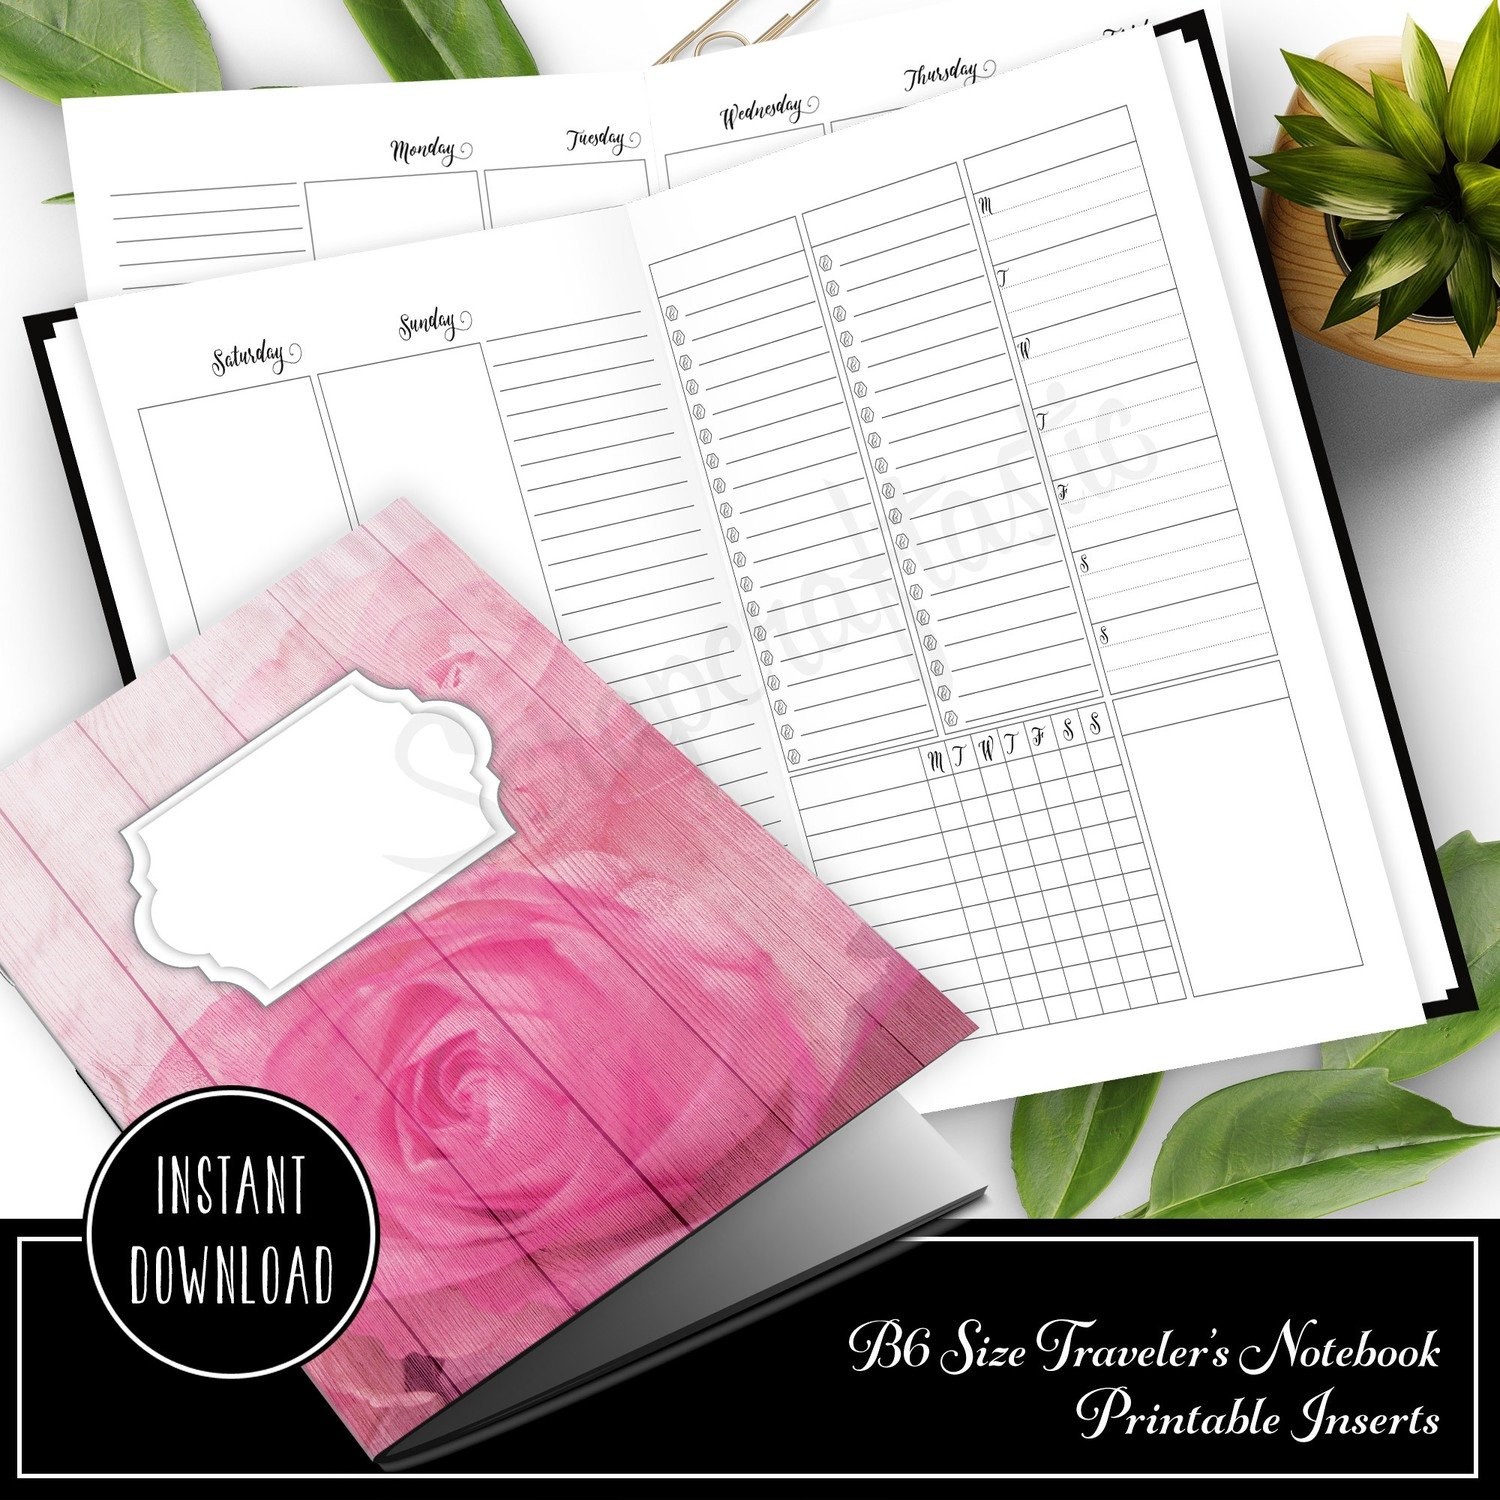 Deluxe Week on Four Pages (WO4P) B6 Traveler's Notebook Printable Inserts